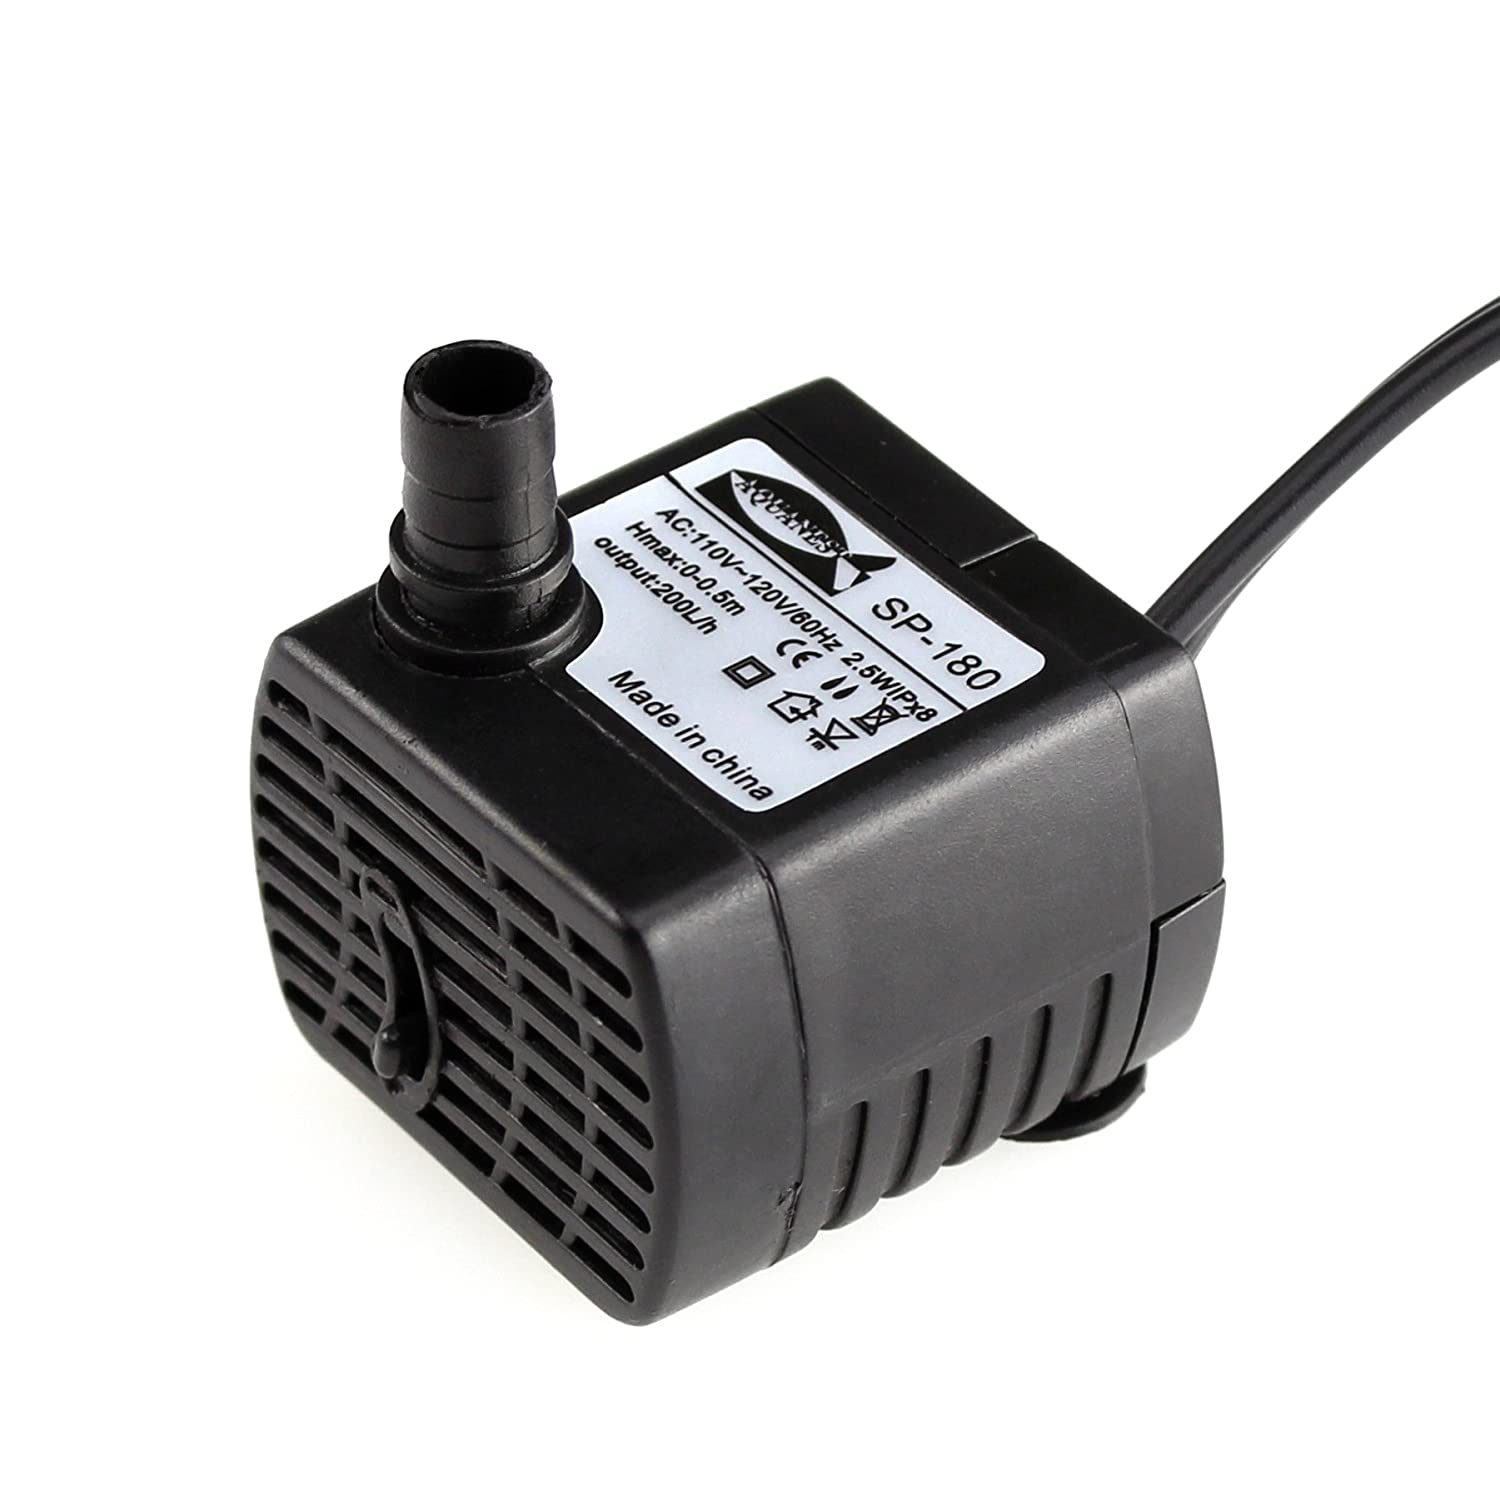 AQUANEAT 50GPH -1060GPH Submersible Water Pump Pond Aquarium Fish Tank Fountain Water Hydroponic